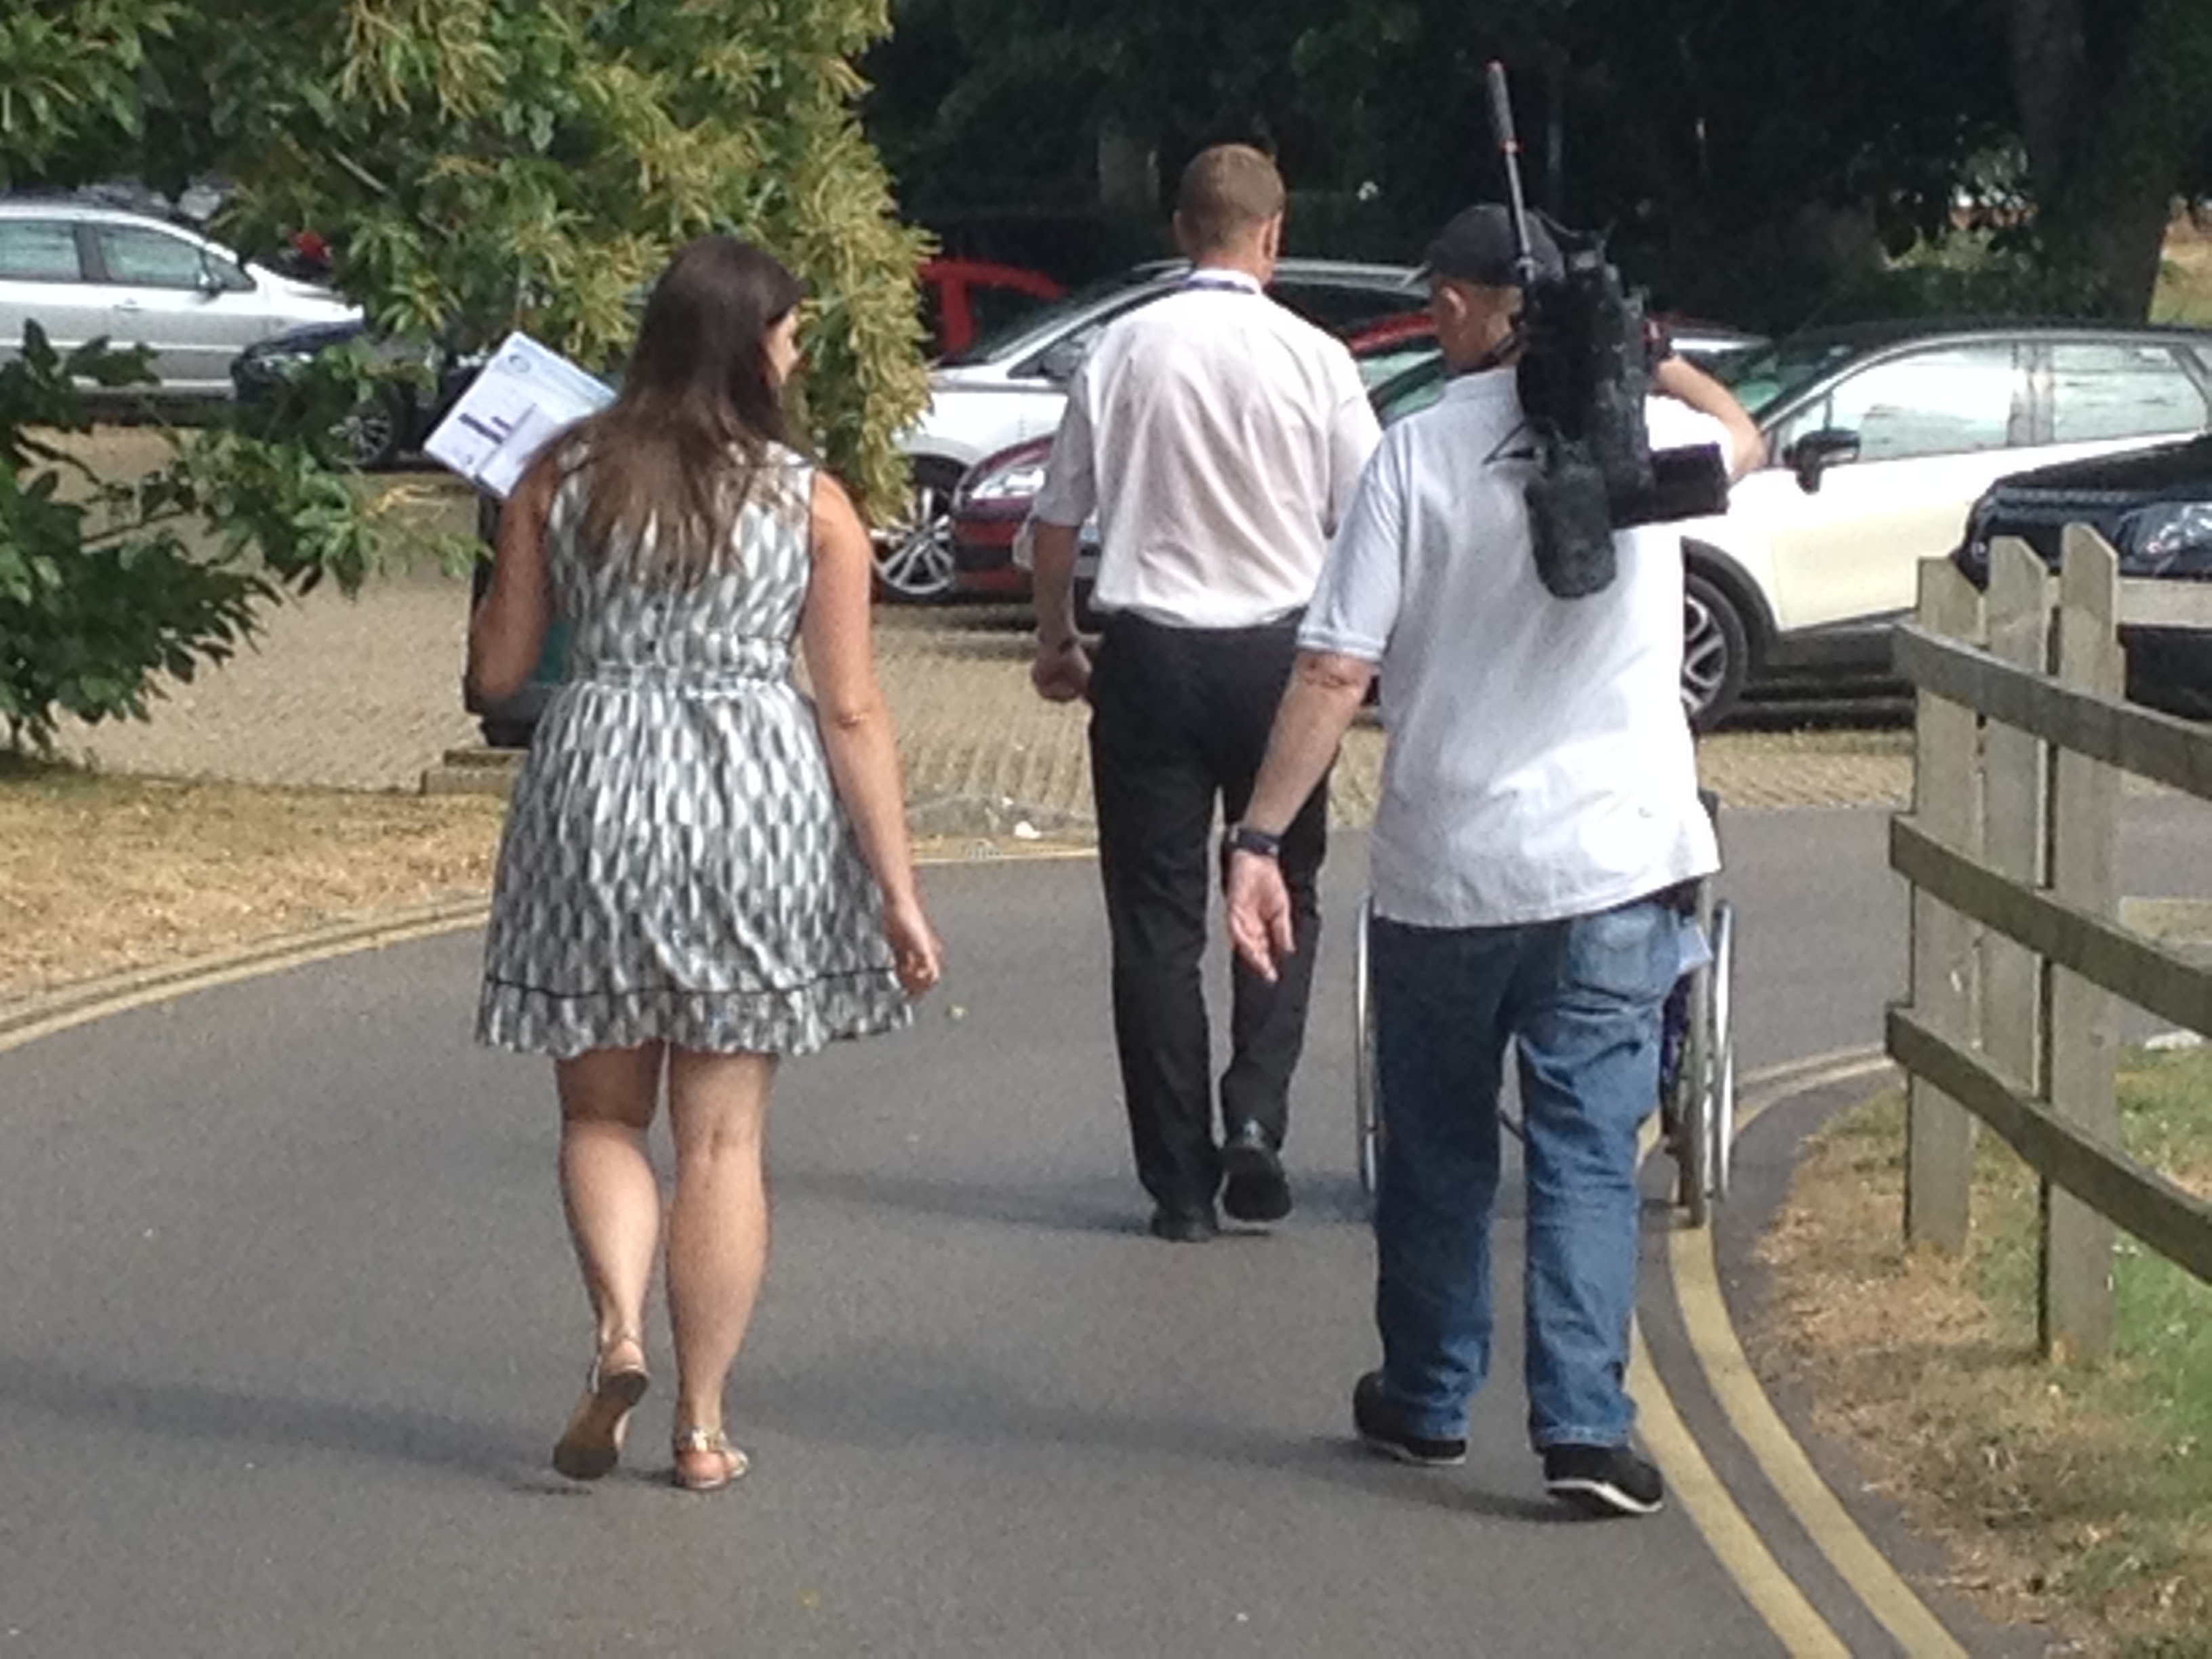 Direct Taxis Promotional Video Filming – Day 2!